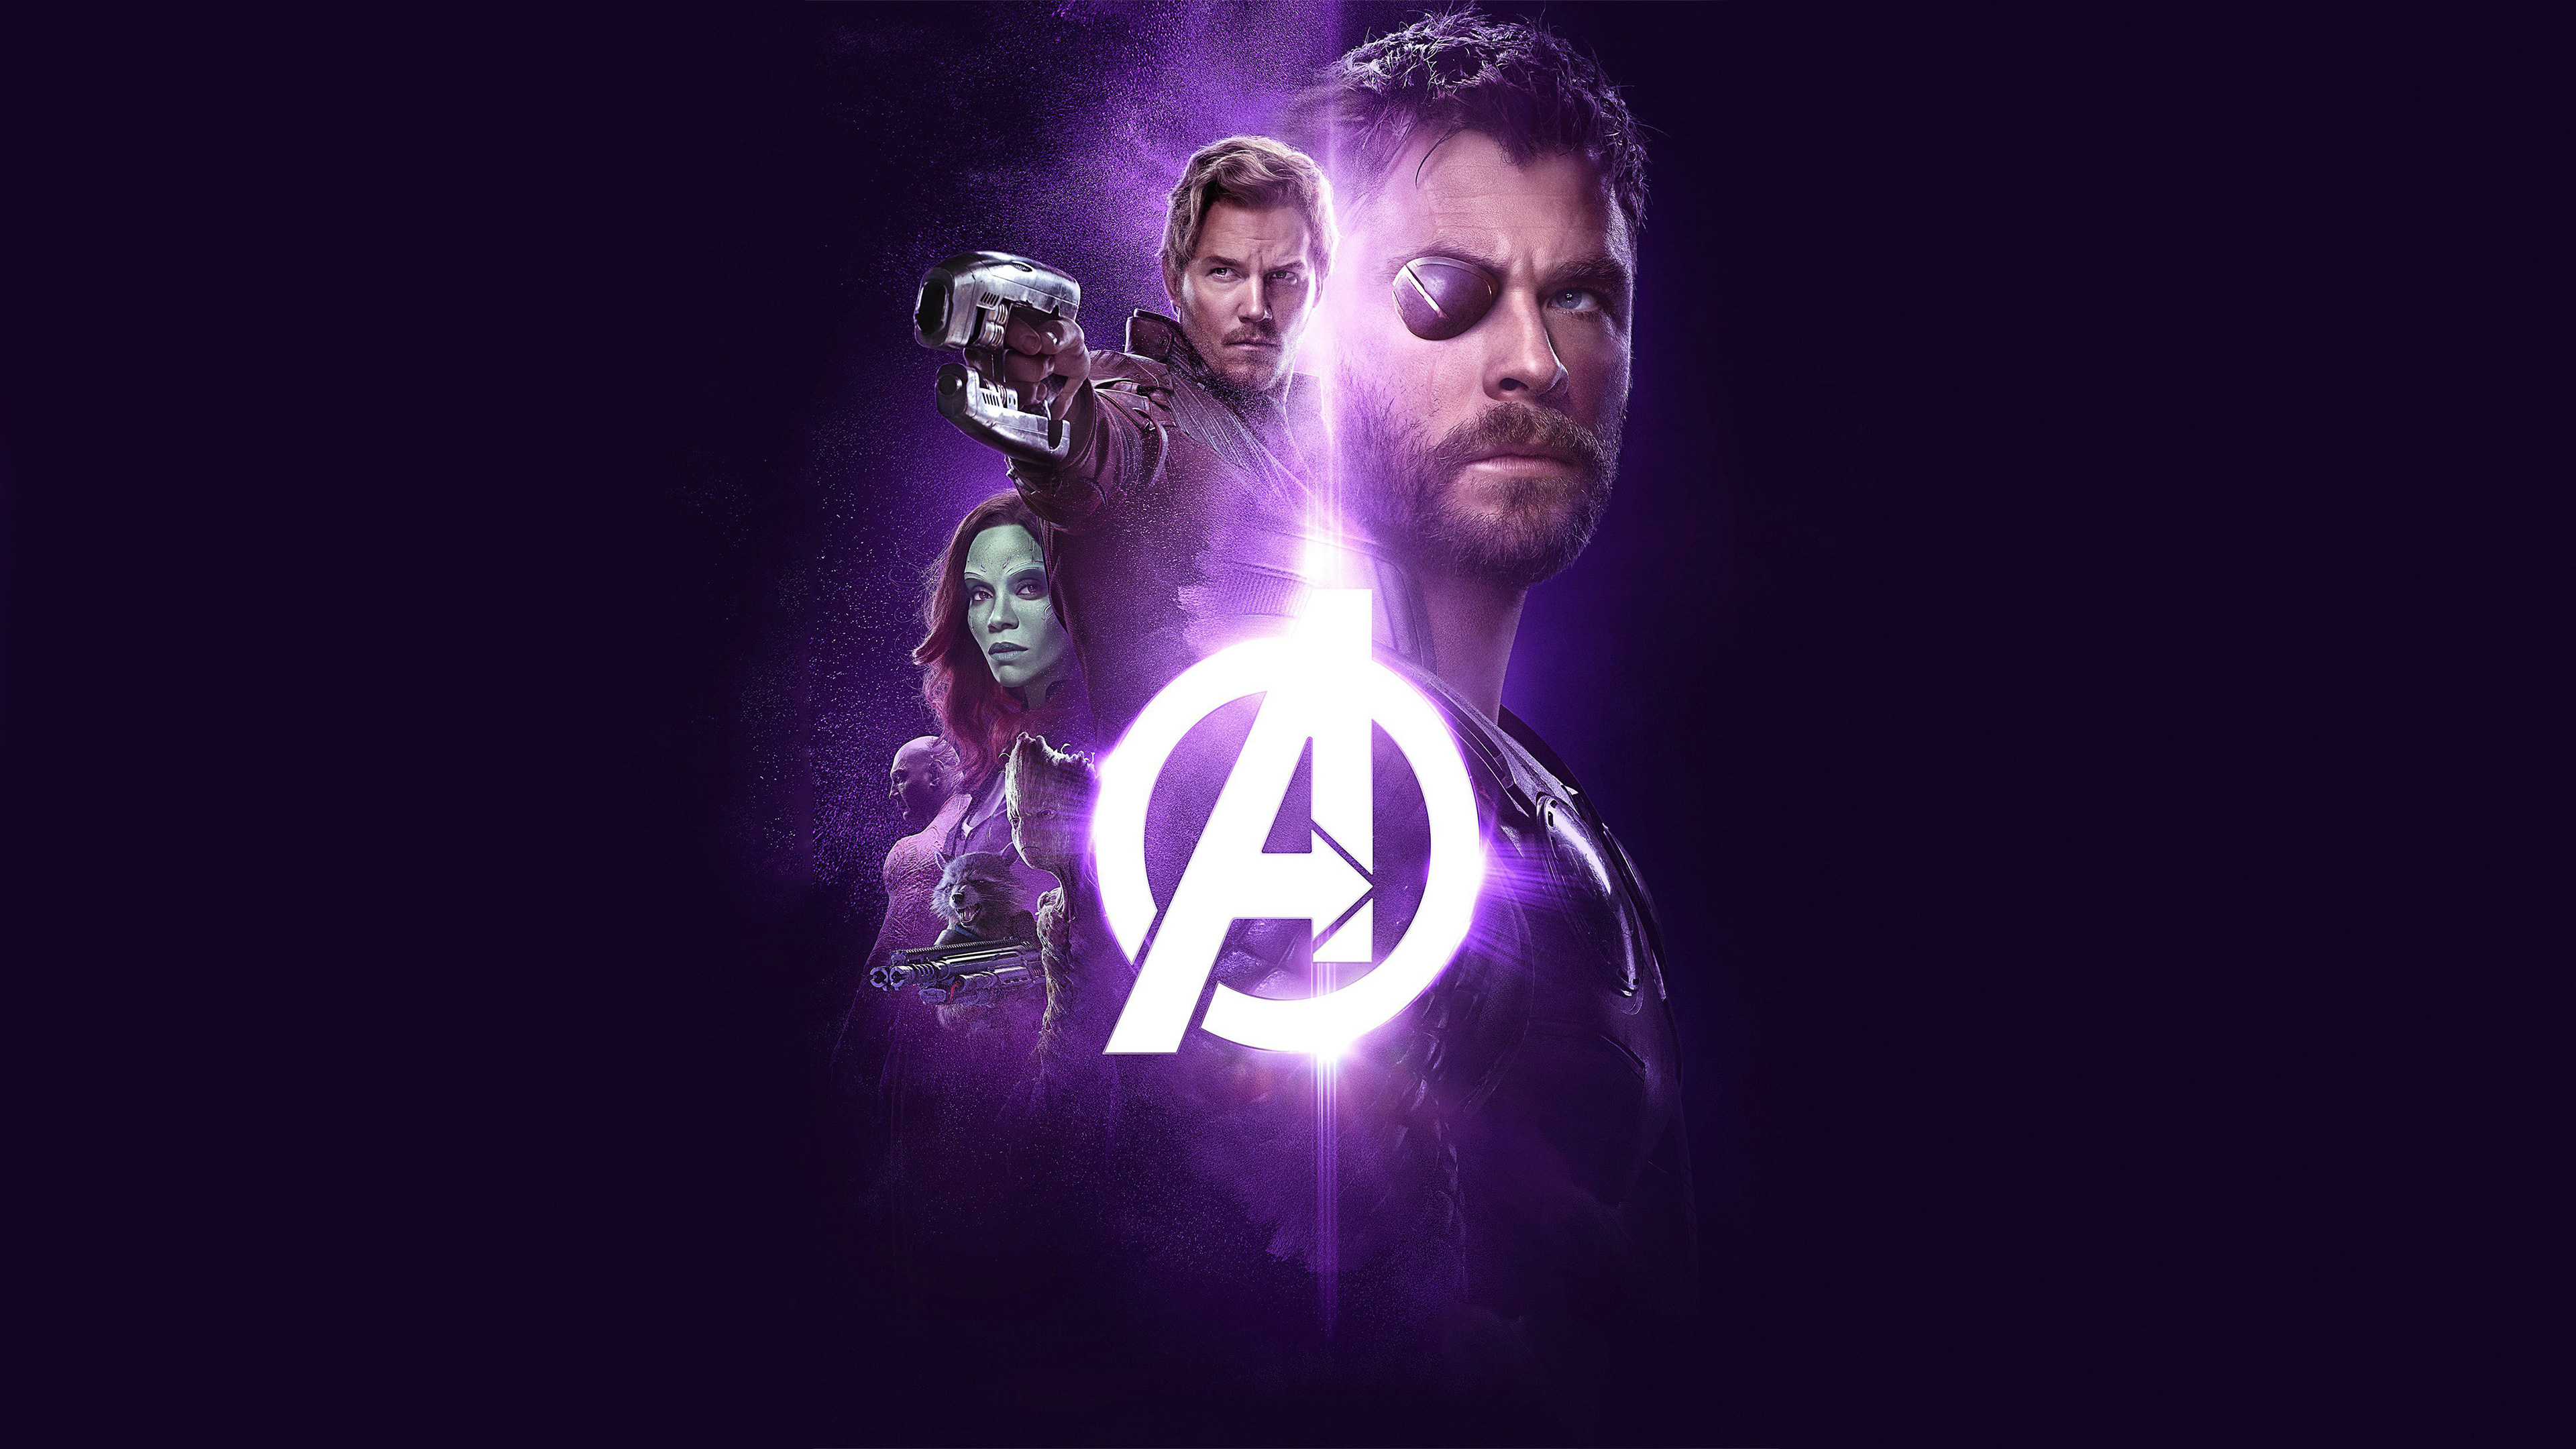 Avengers Infinity War 2018 Power Stone Poster 4k Hd Movies 4k